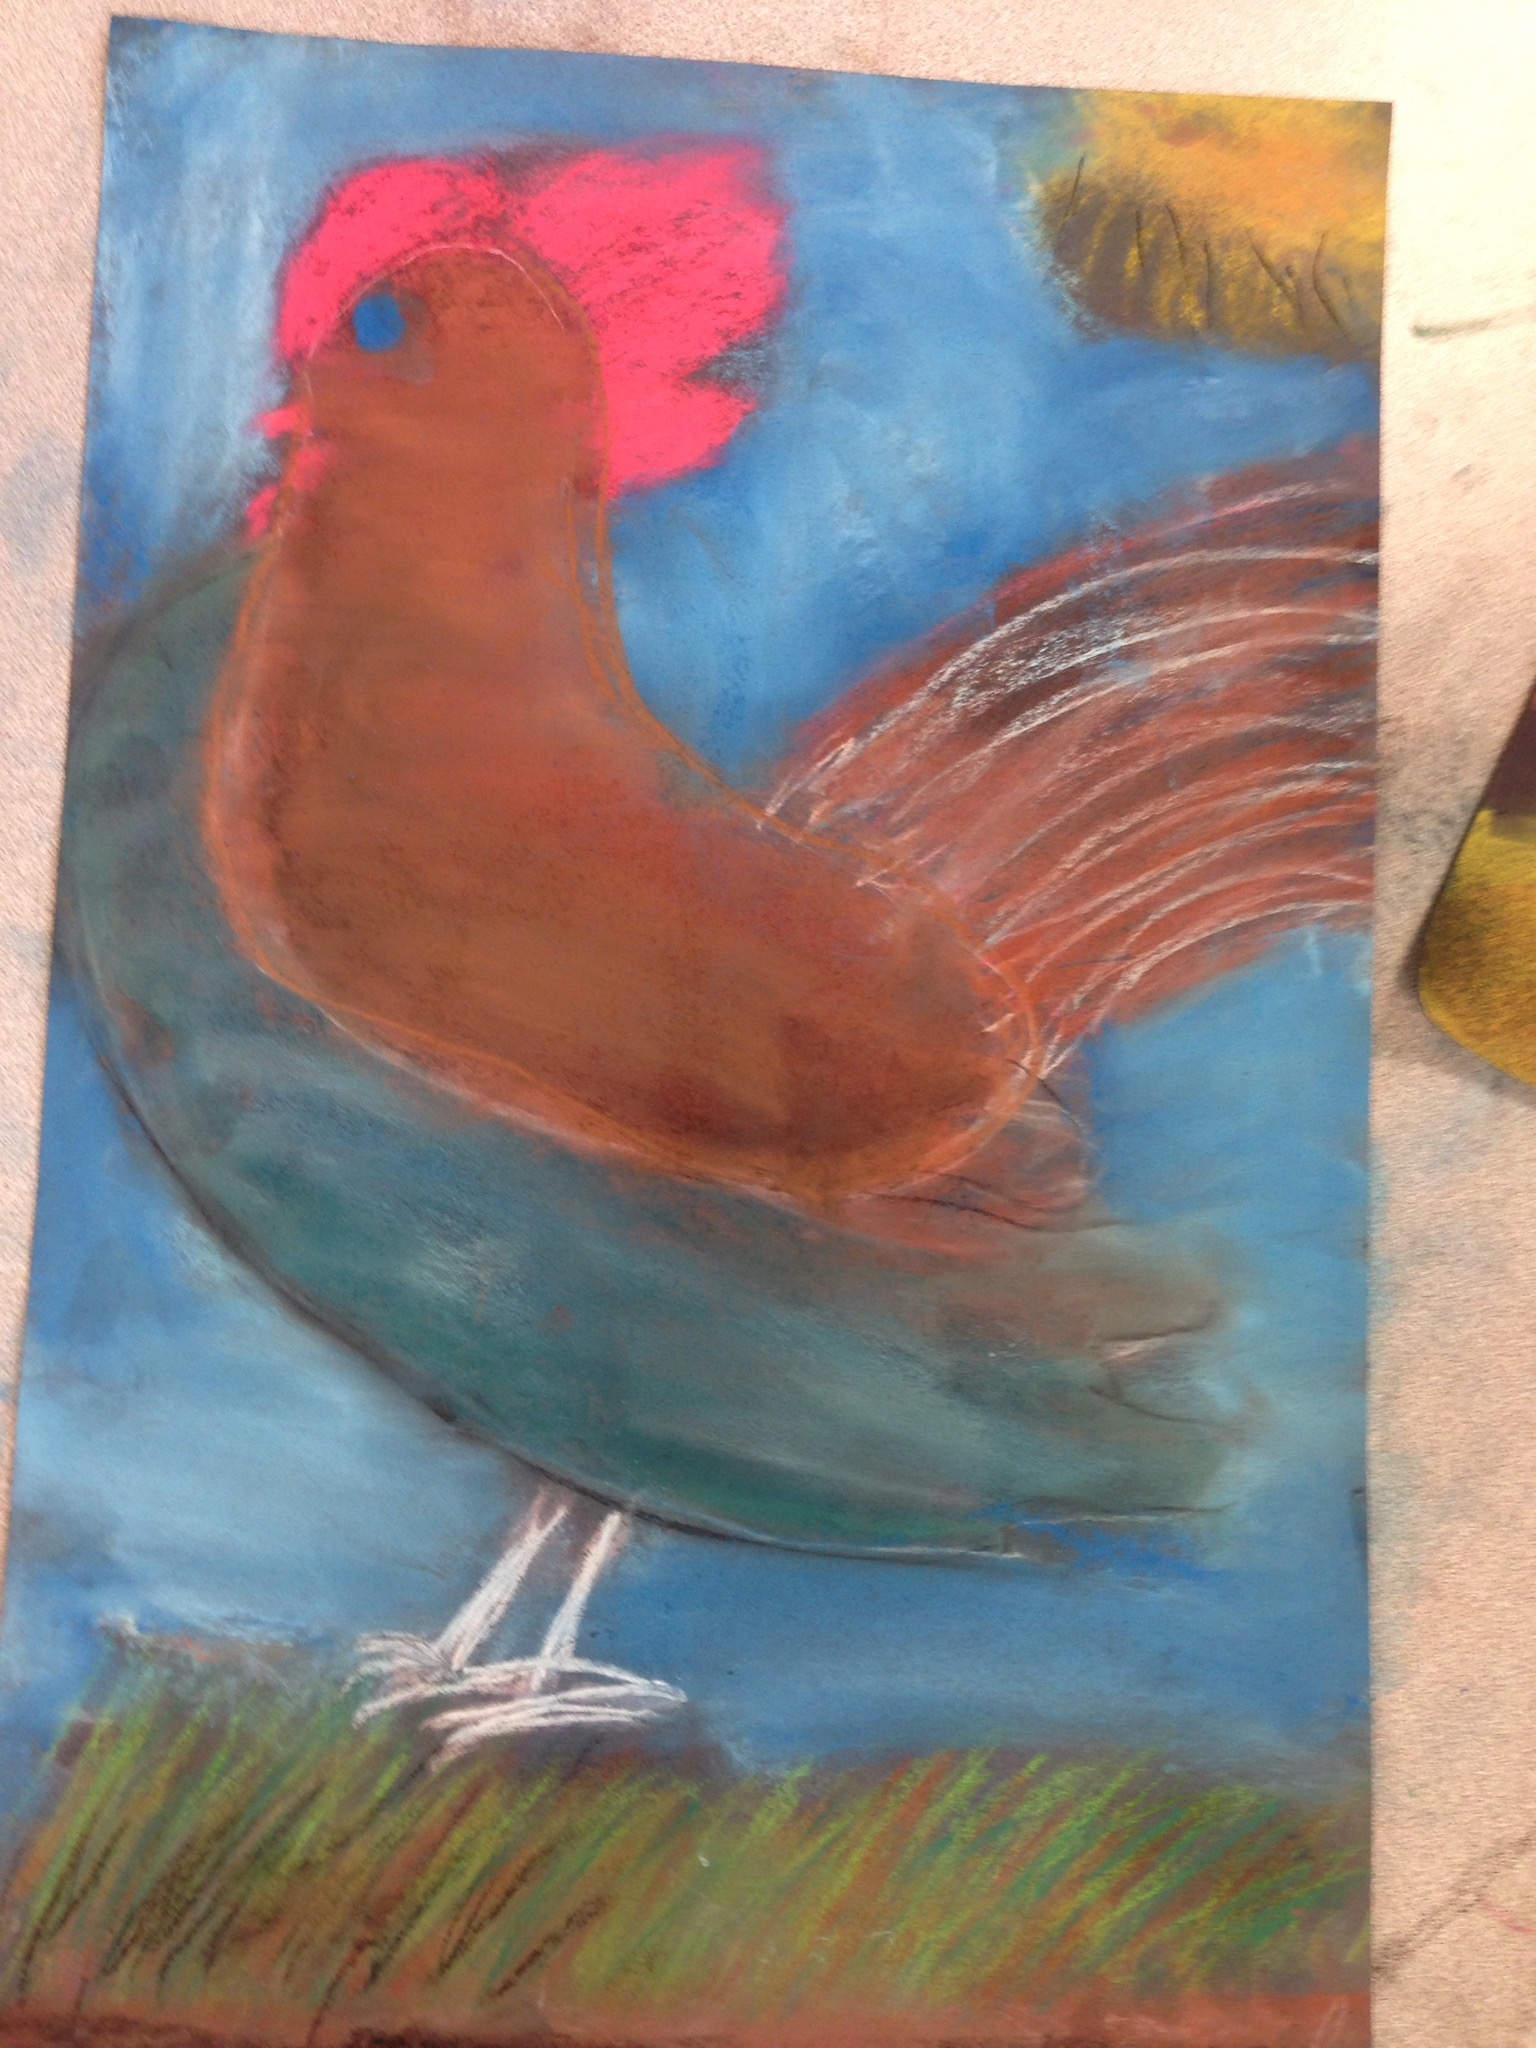 Drawn rooster rodeo Roosters In 160 Grade Rodeo